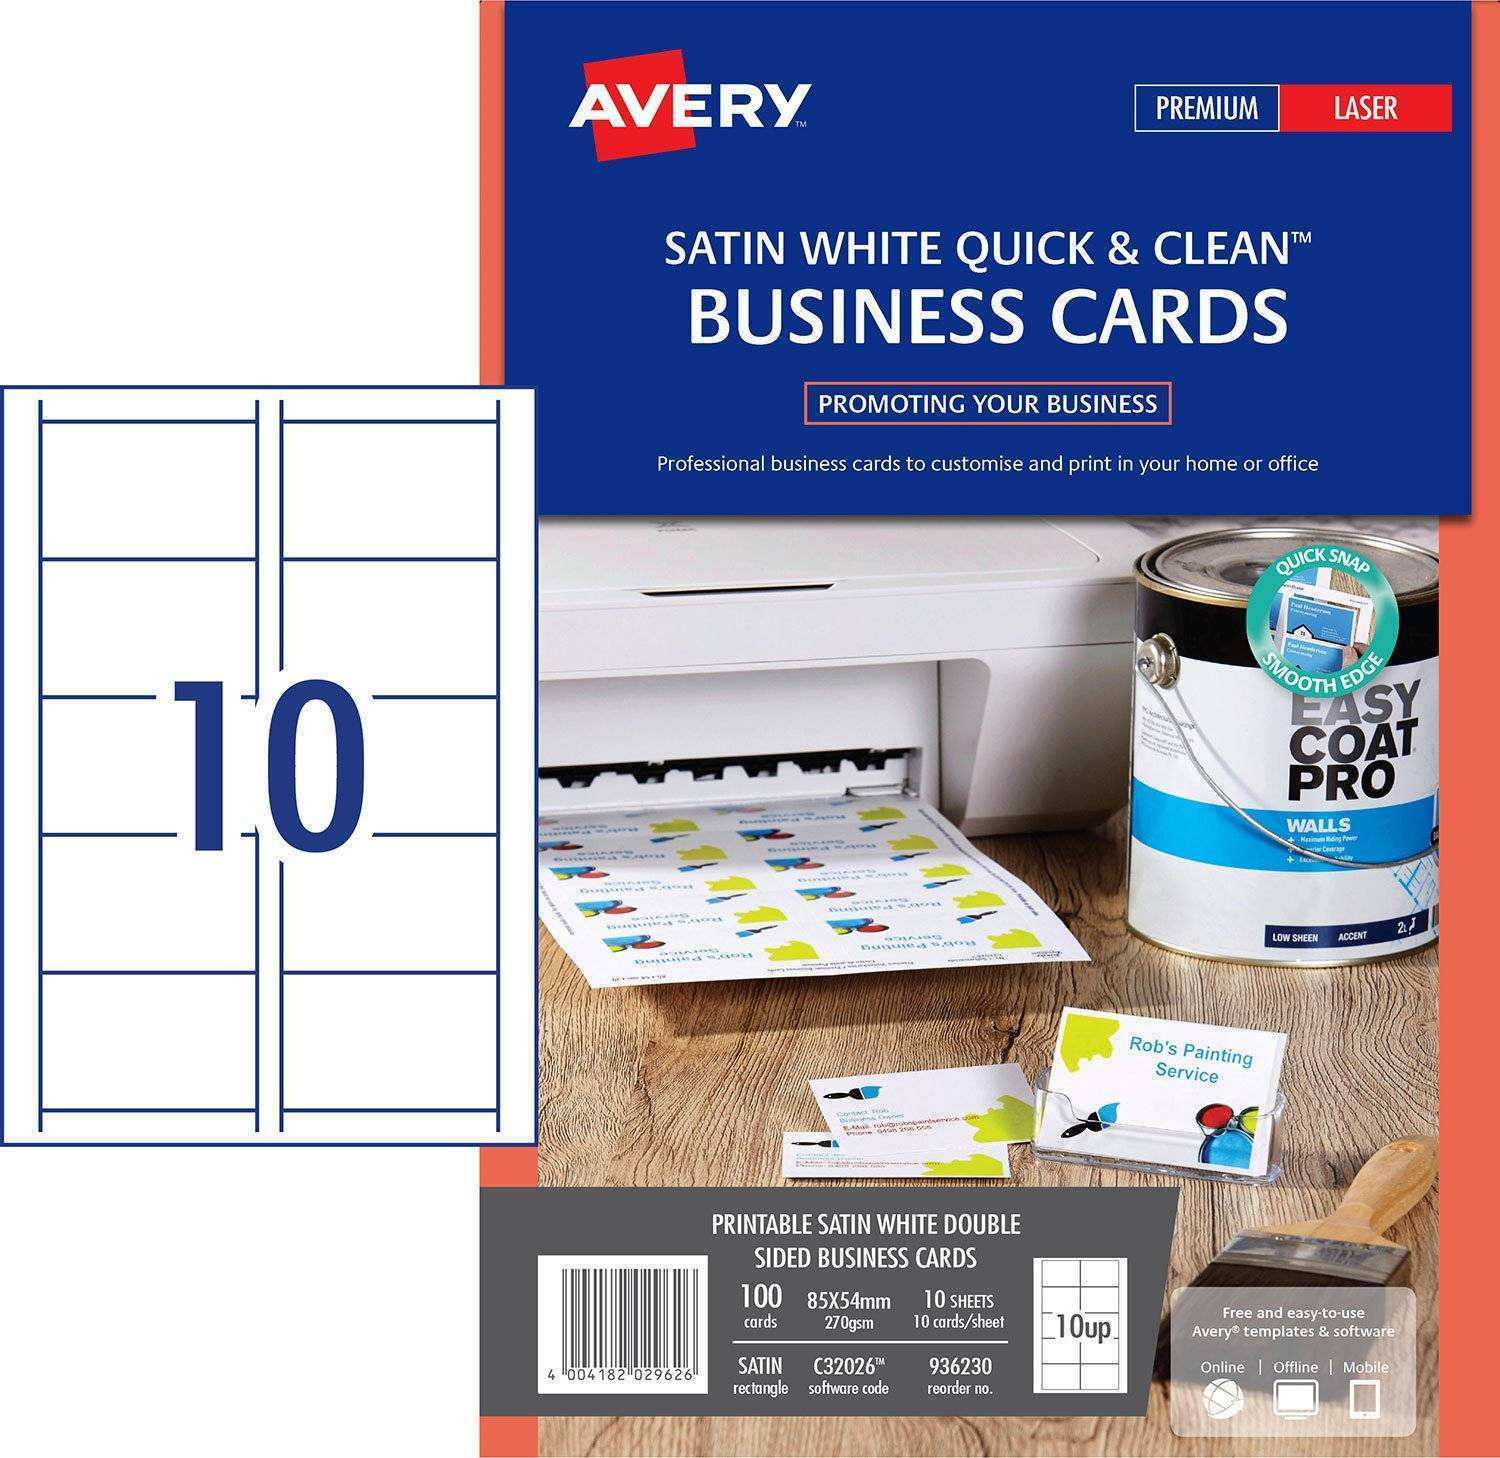 94 Format Avery Business Card Template Software With Stunning Design for Avery Business Card Template Software